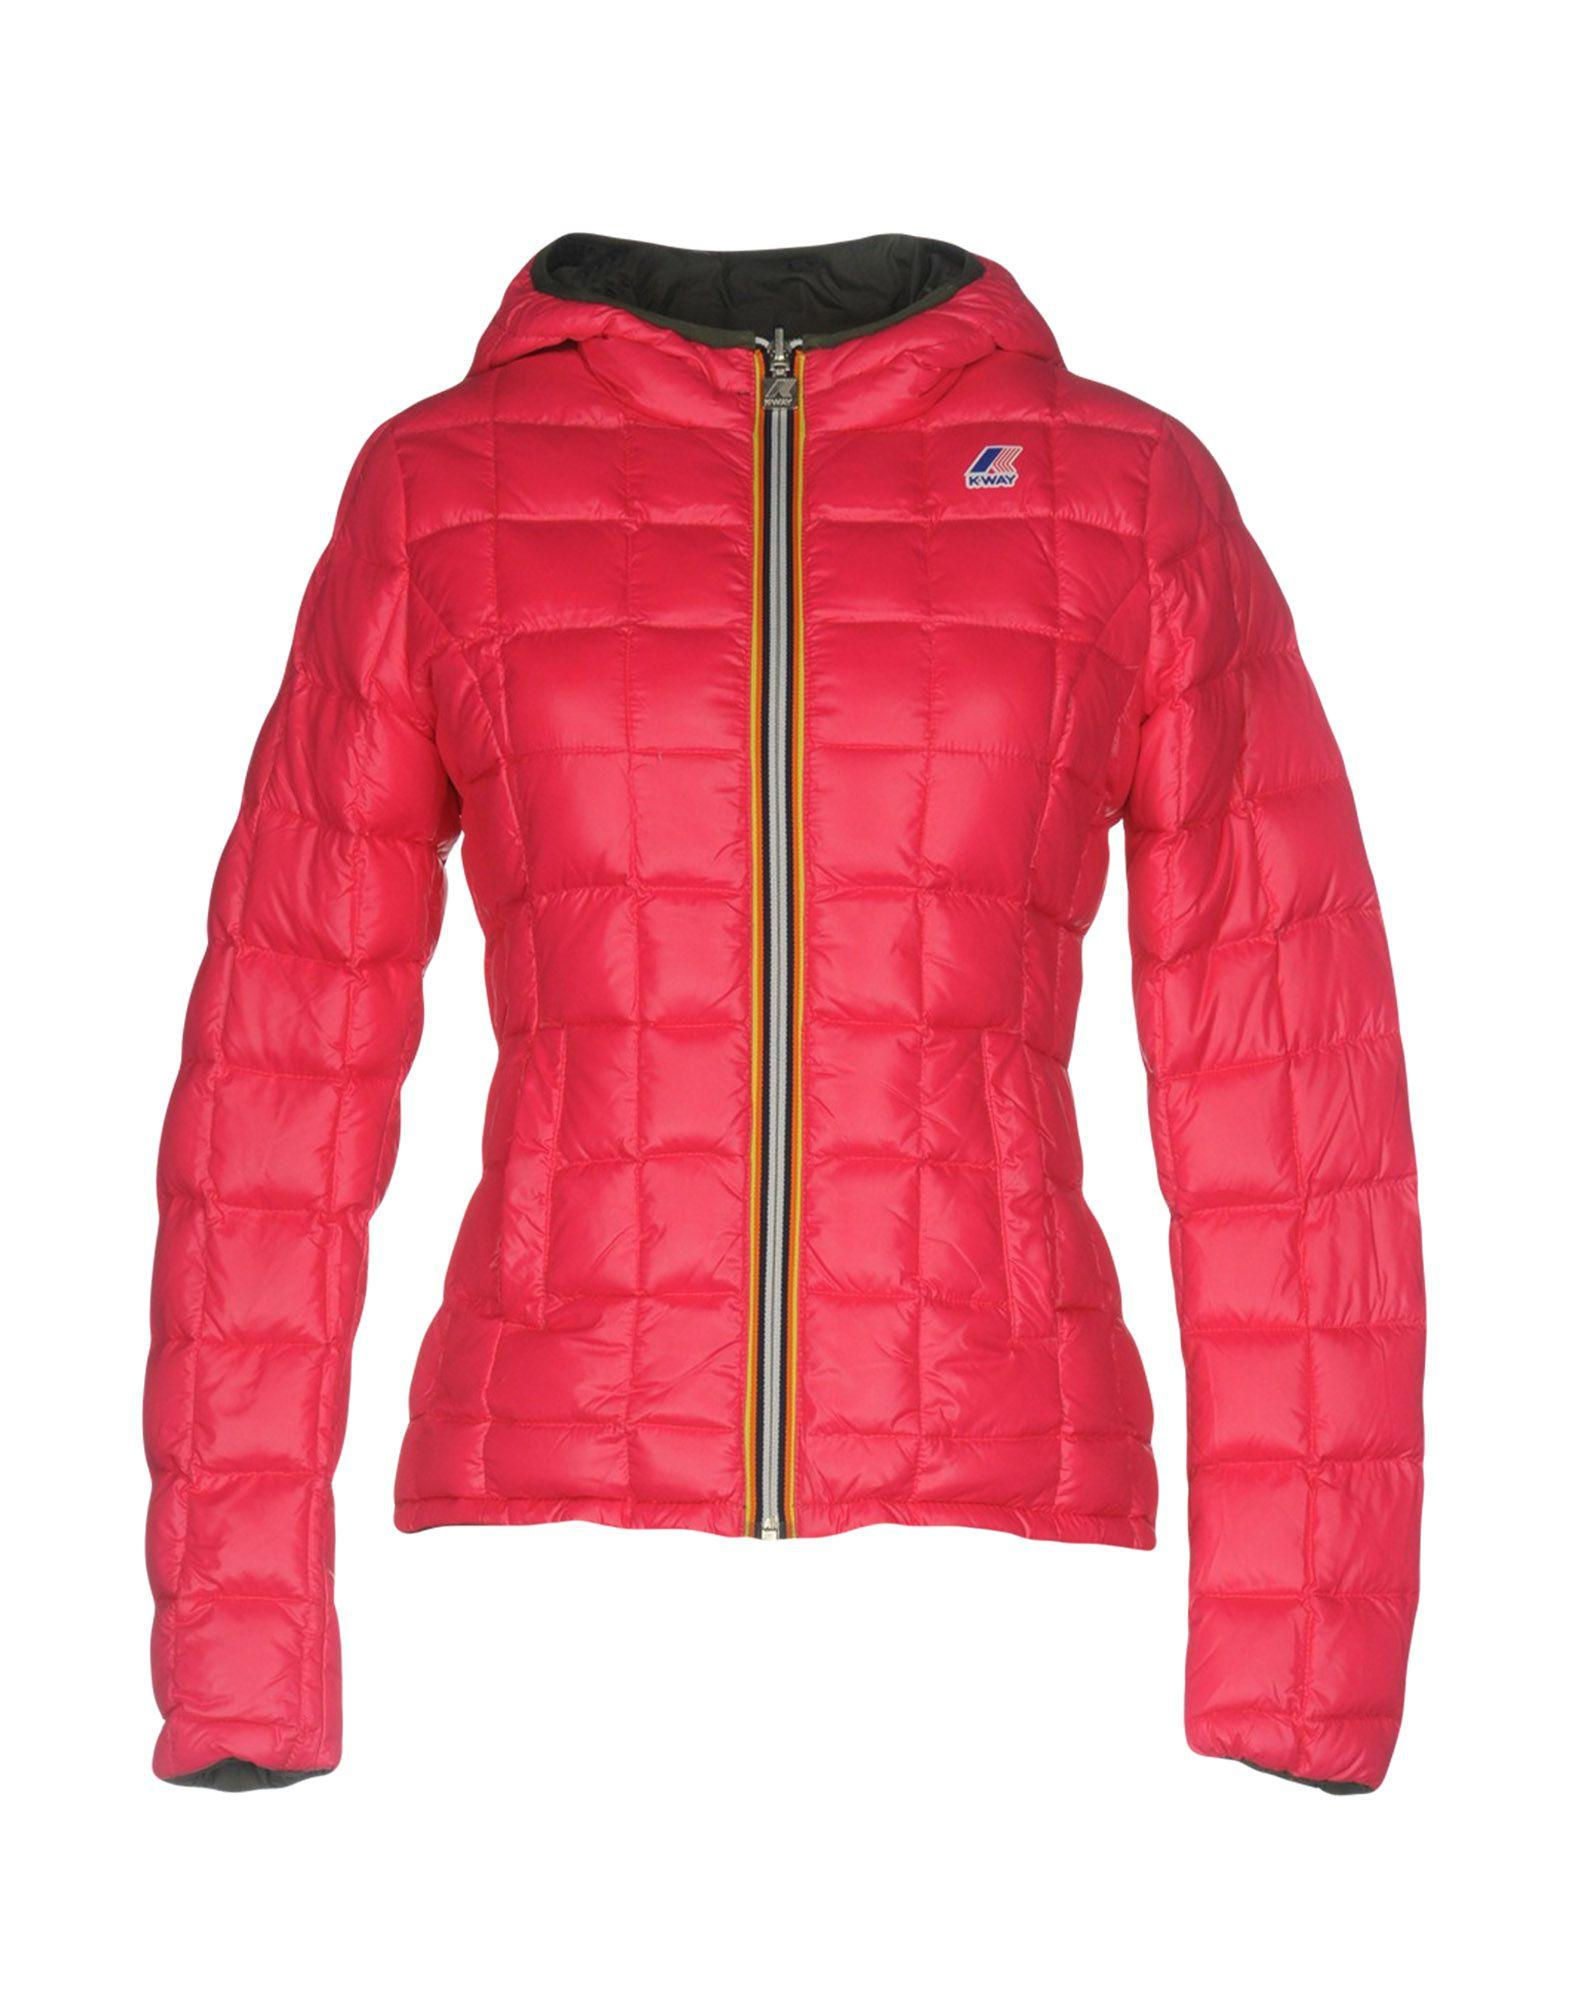 K-way Down Jackets In Fuchsia